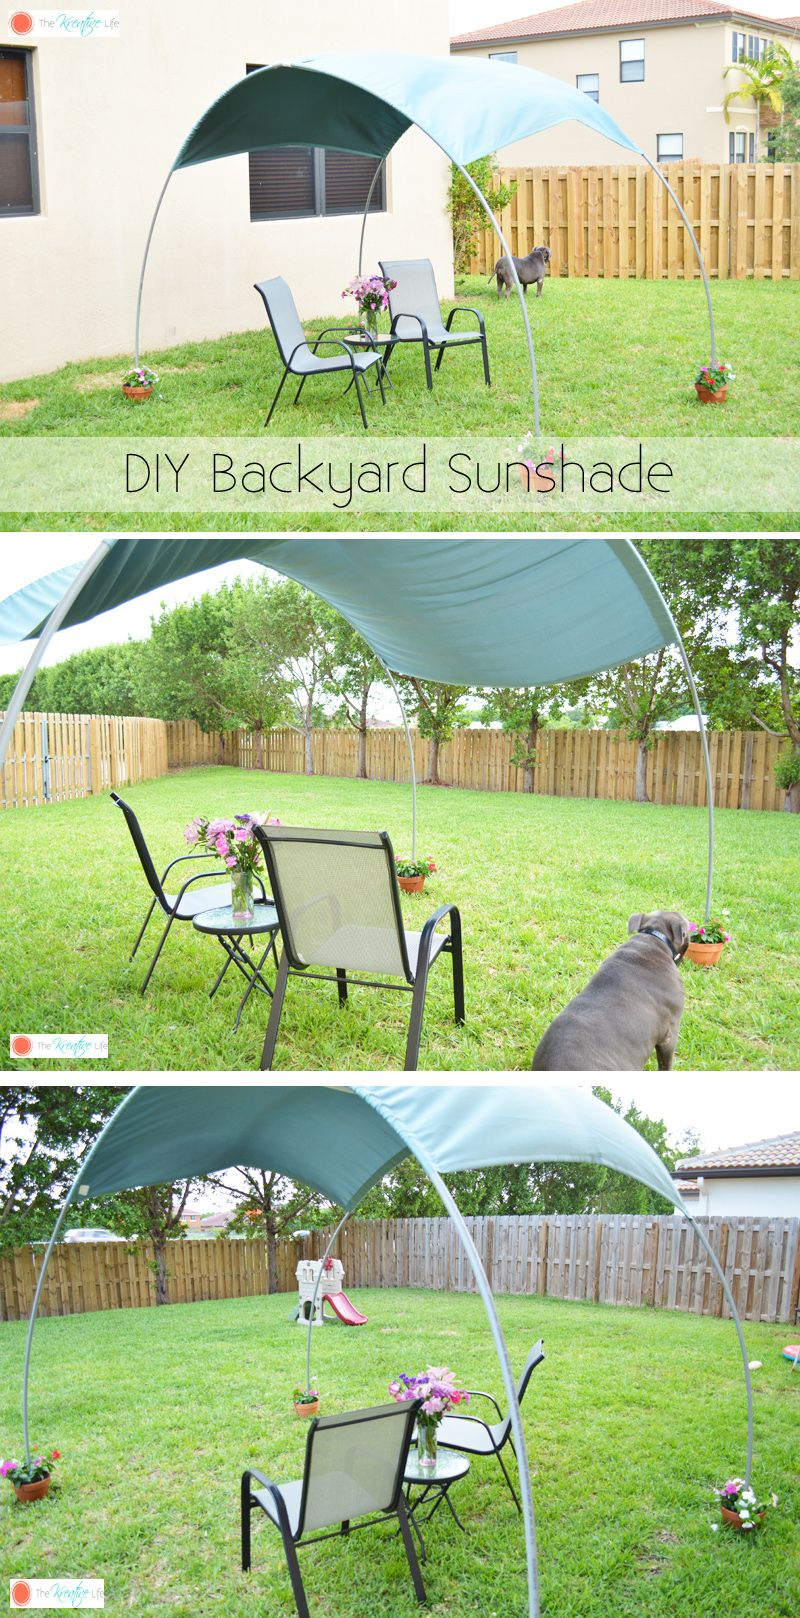 DIY Backyard Sunshade....finally found the instructions to actually ...